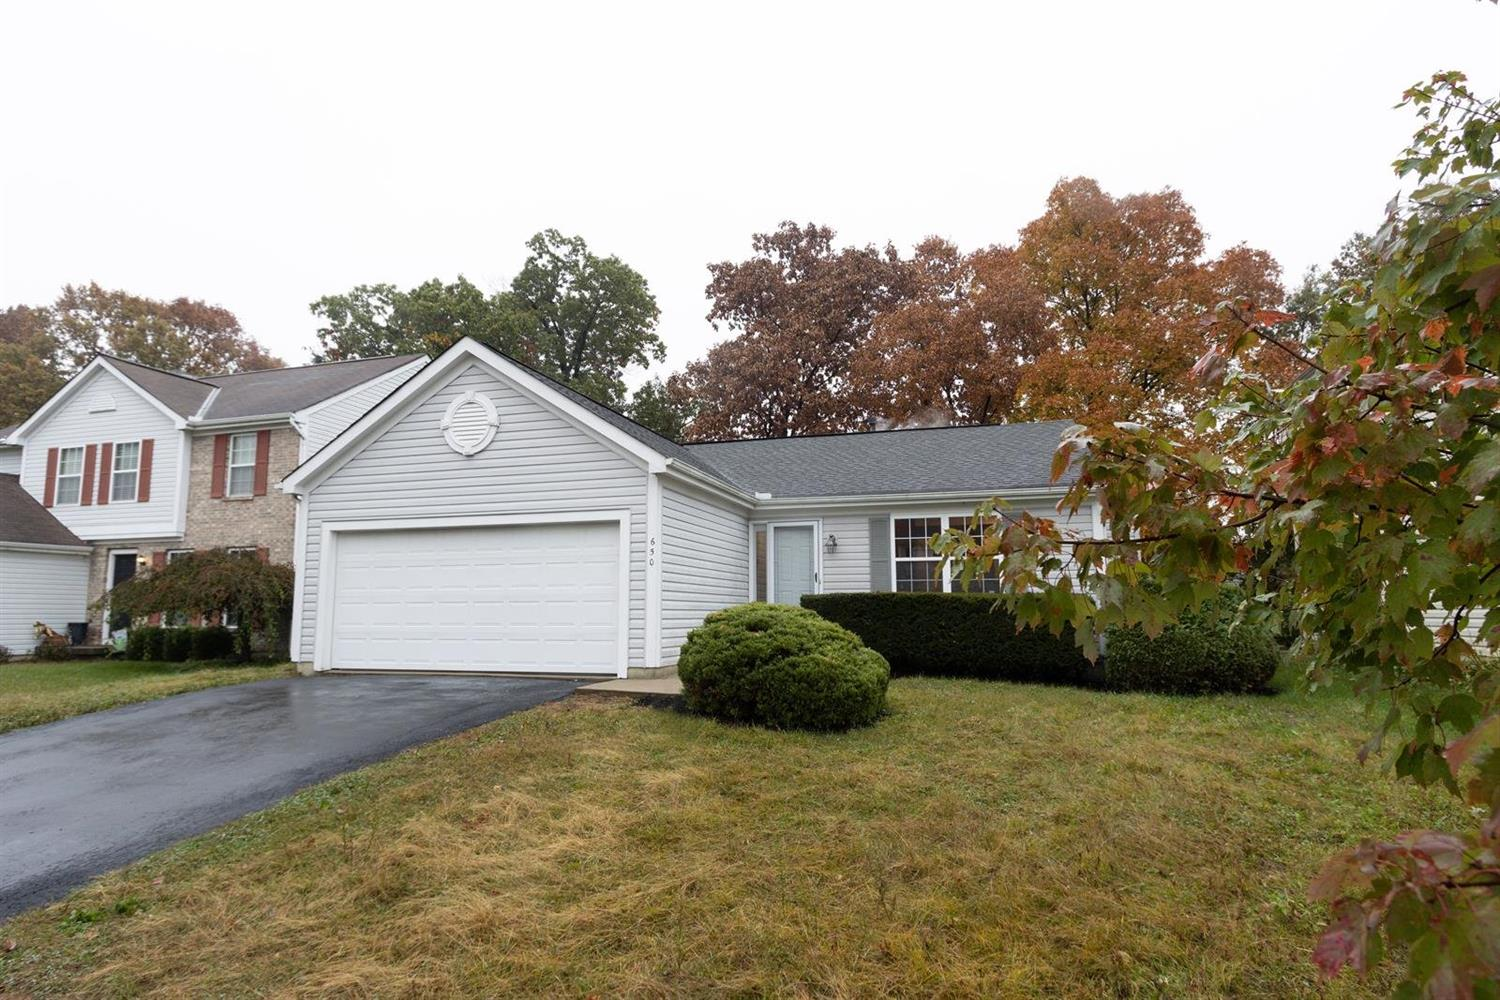 Property for sale at 650 Weeping Willow Lane, Hamilton Twp,  Ohio 45039